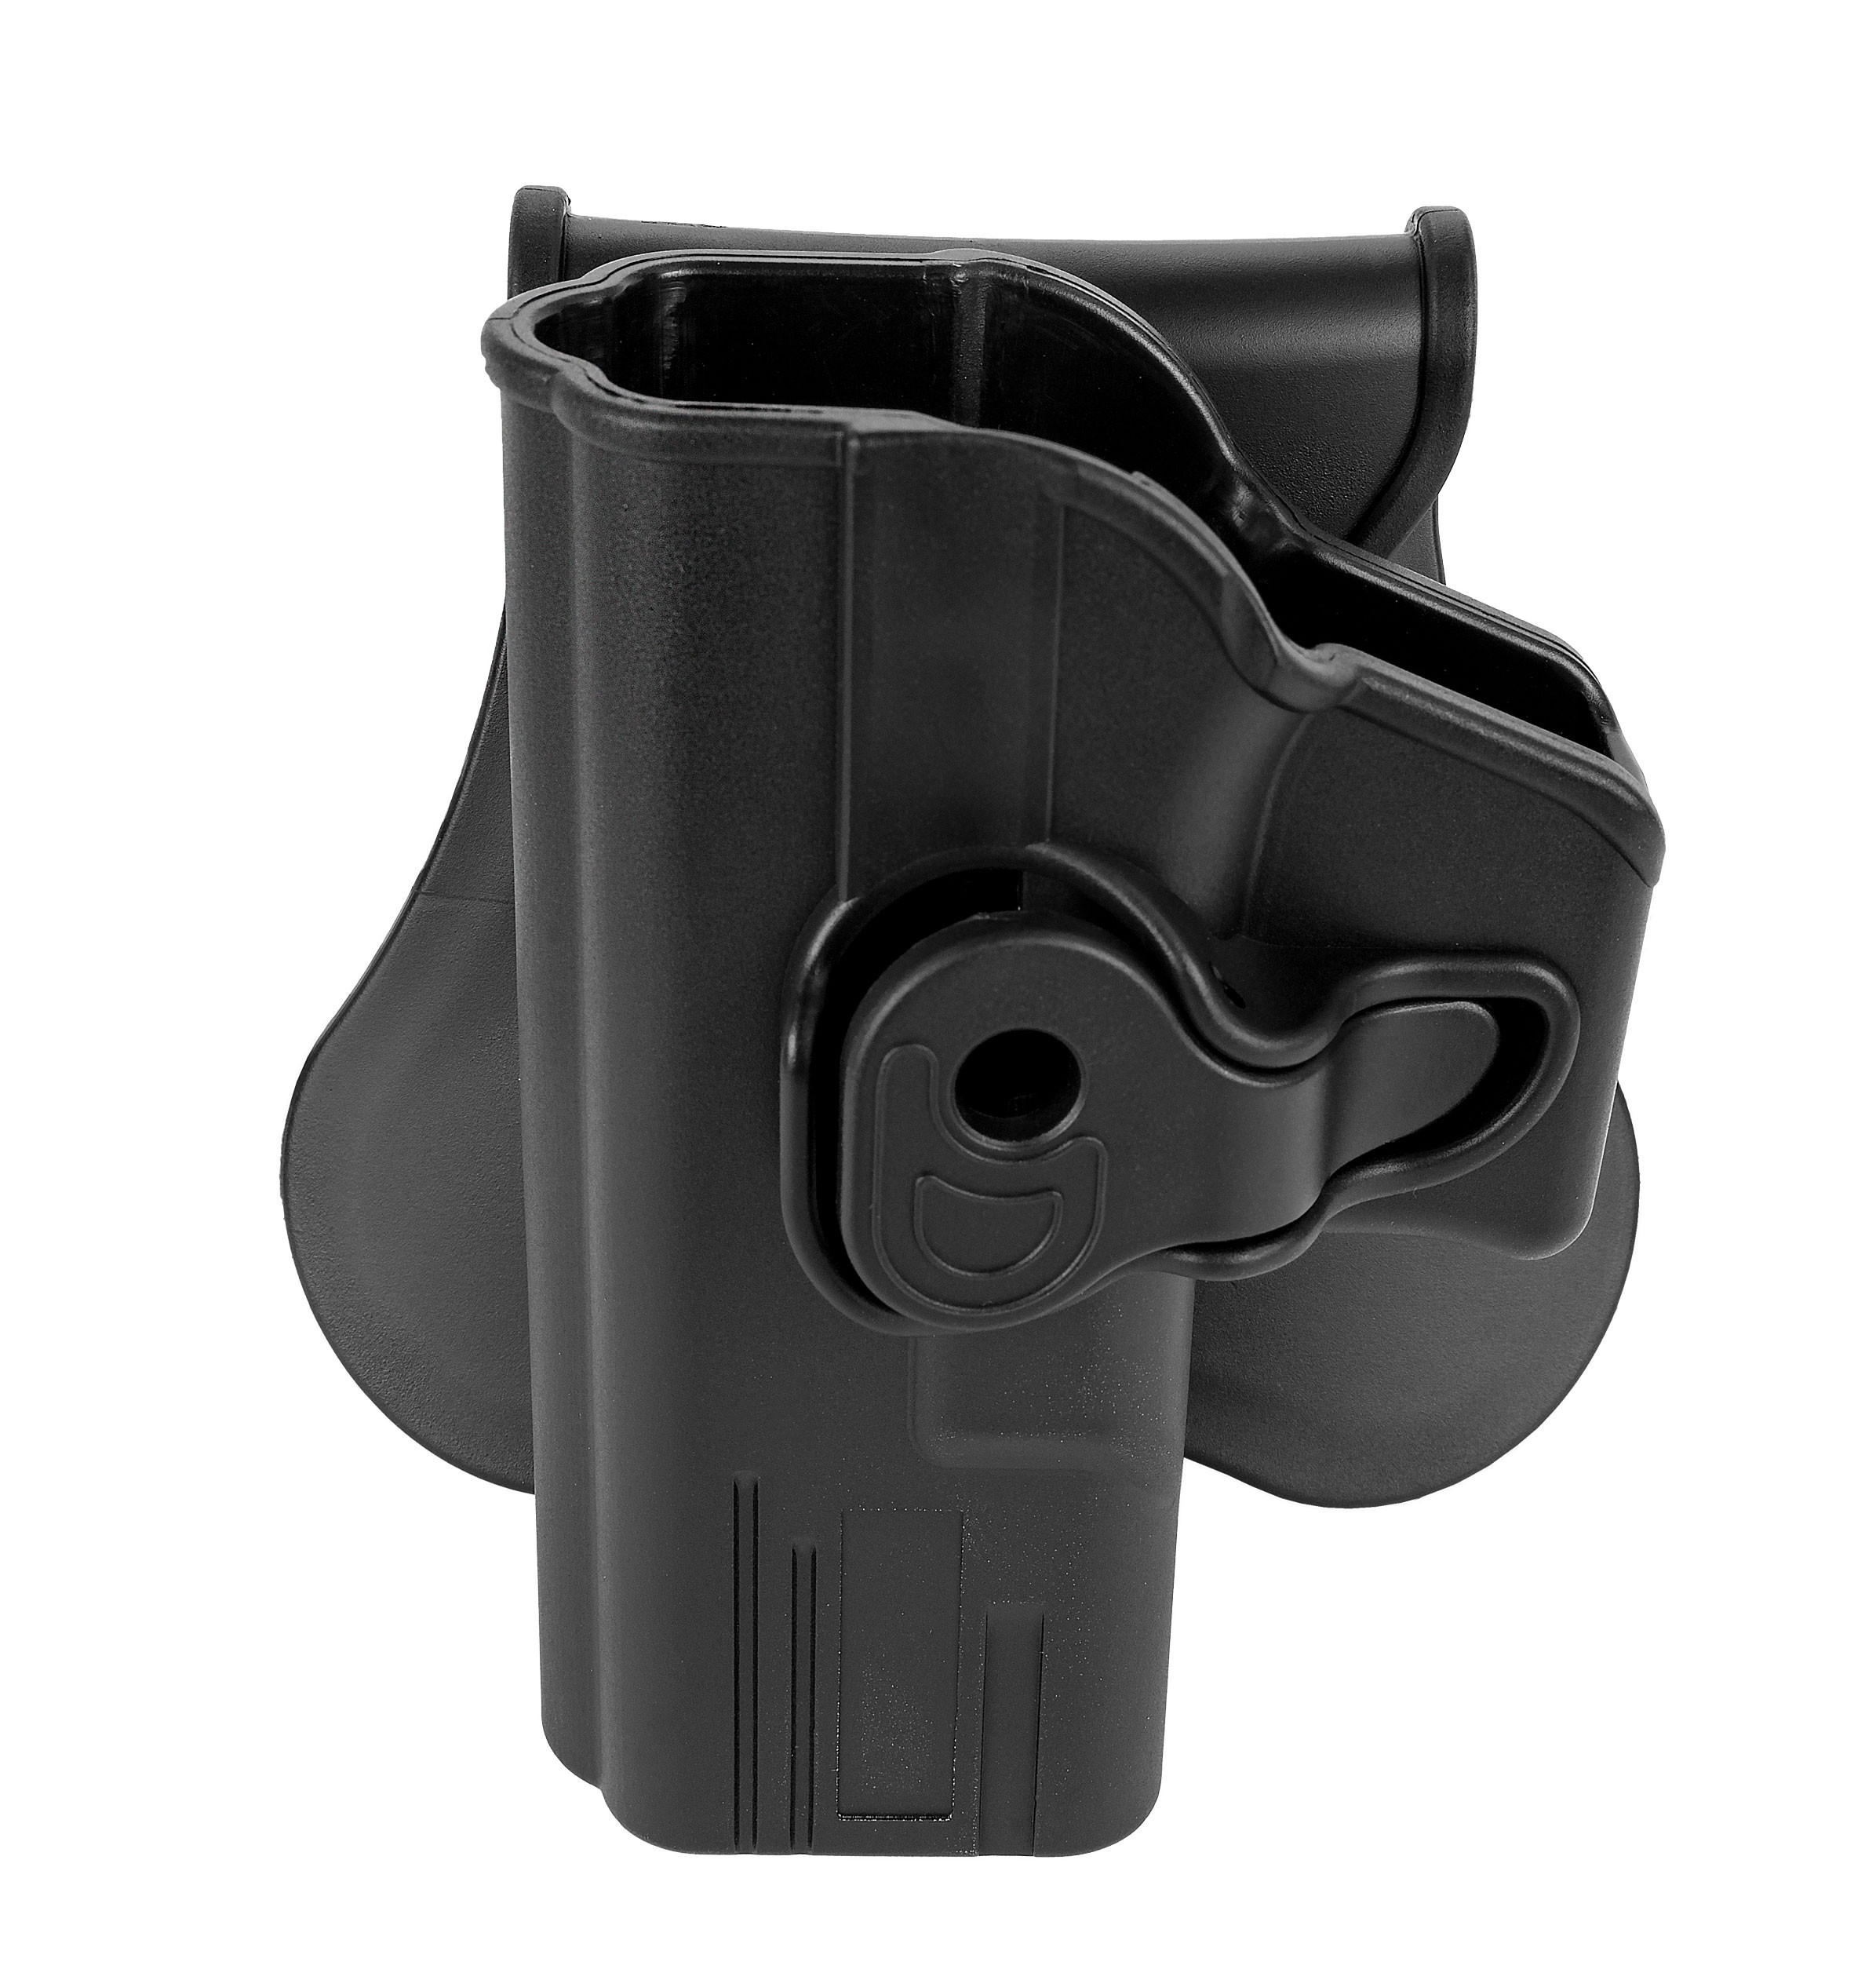 Fits Glock 19, 23, 32 (Gen 1,2,3,4) Left Hand Holster